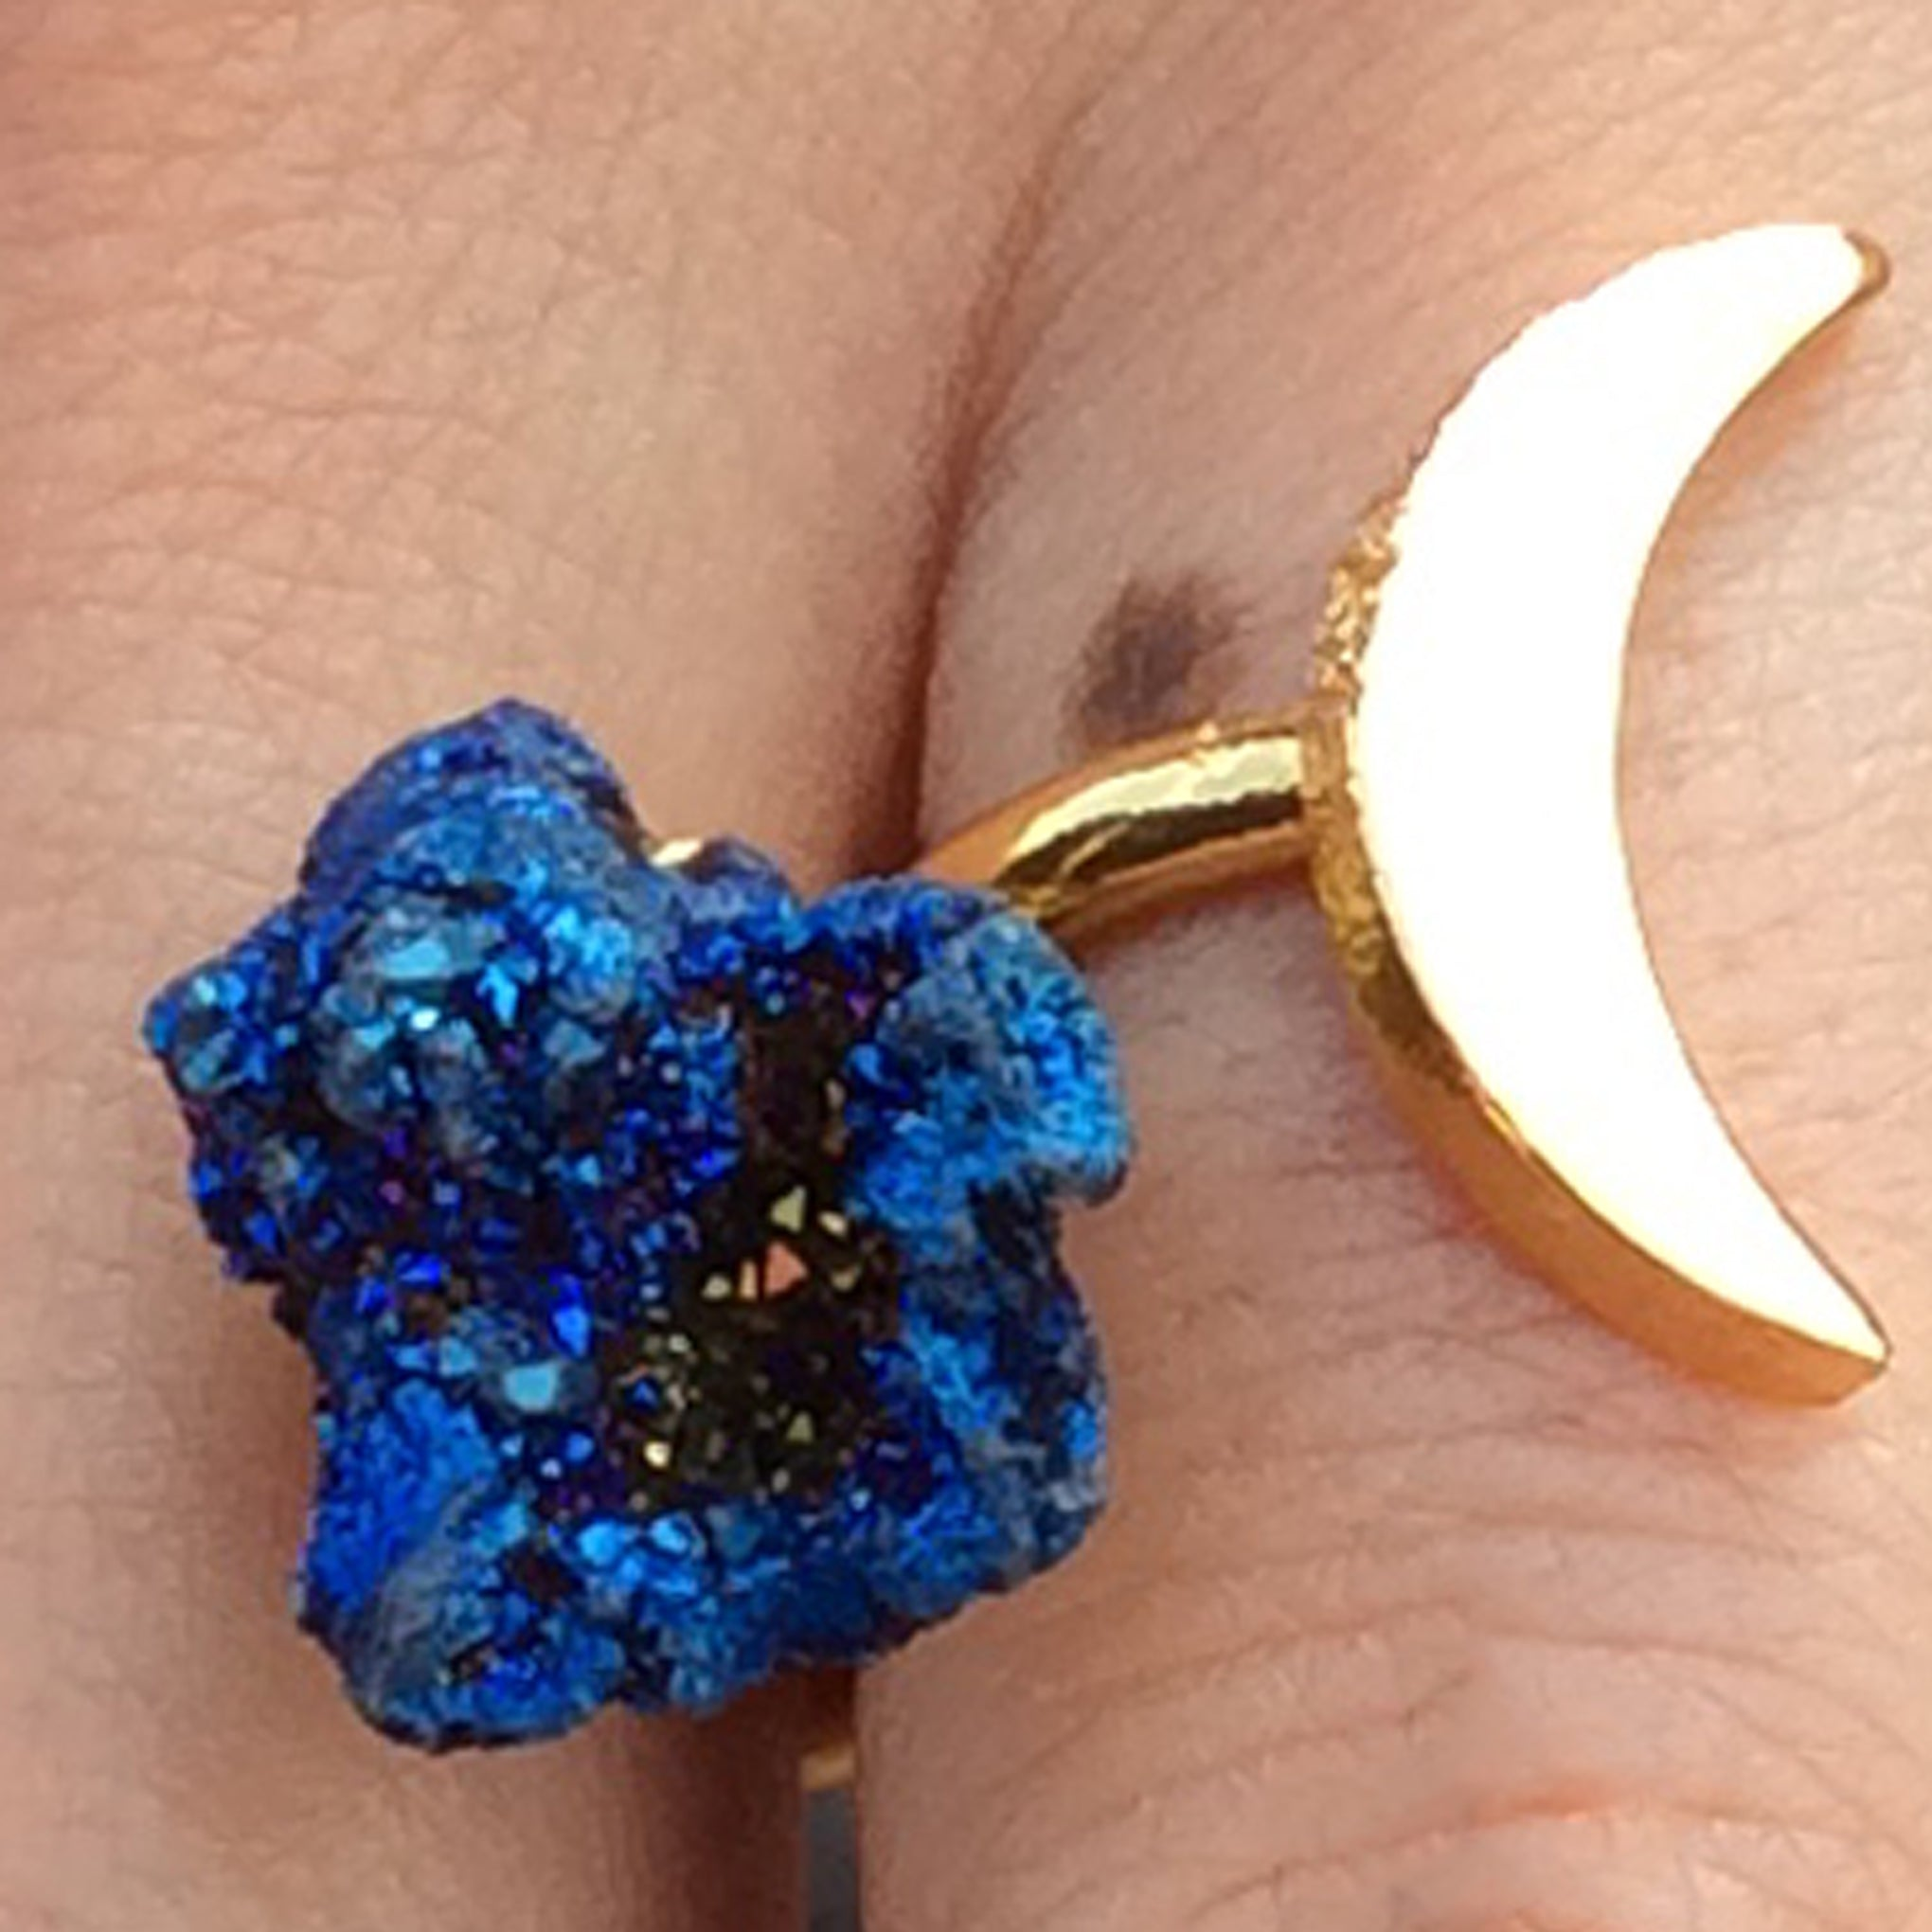 Baddest Bish Ever Fine Jewelry Dreamy Dreams Collection Triple Eclipse Glitterati Blue Titanium Coated Druzy Quartz Crystal 16KT Gold Ring model wearing